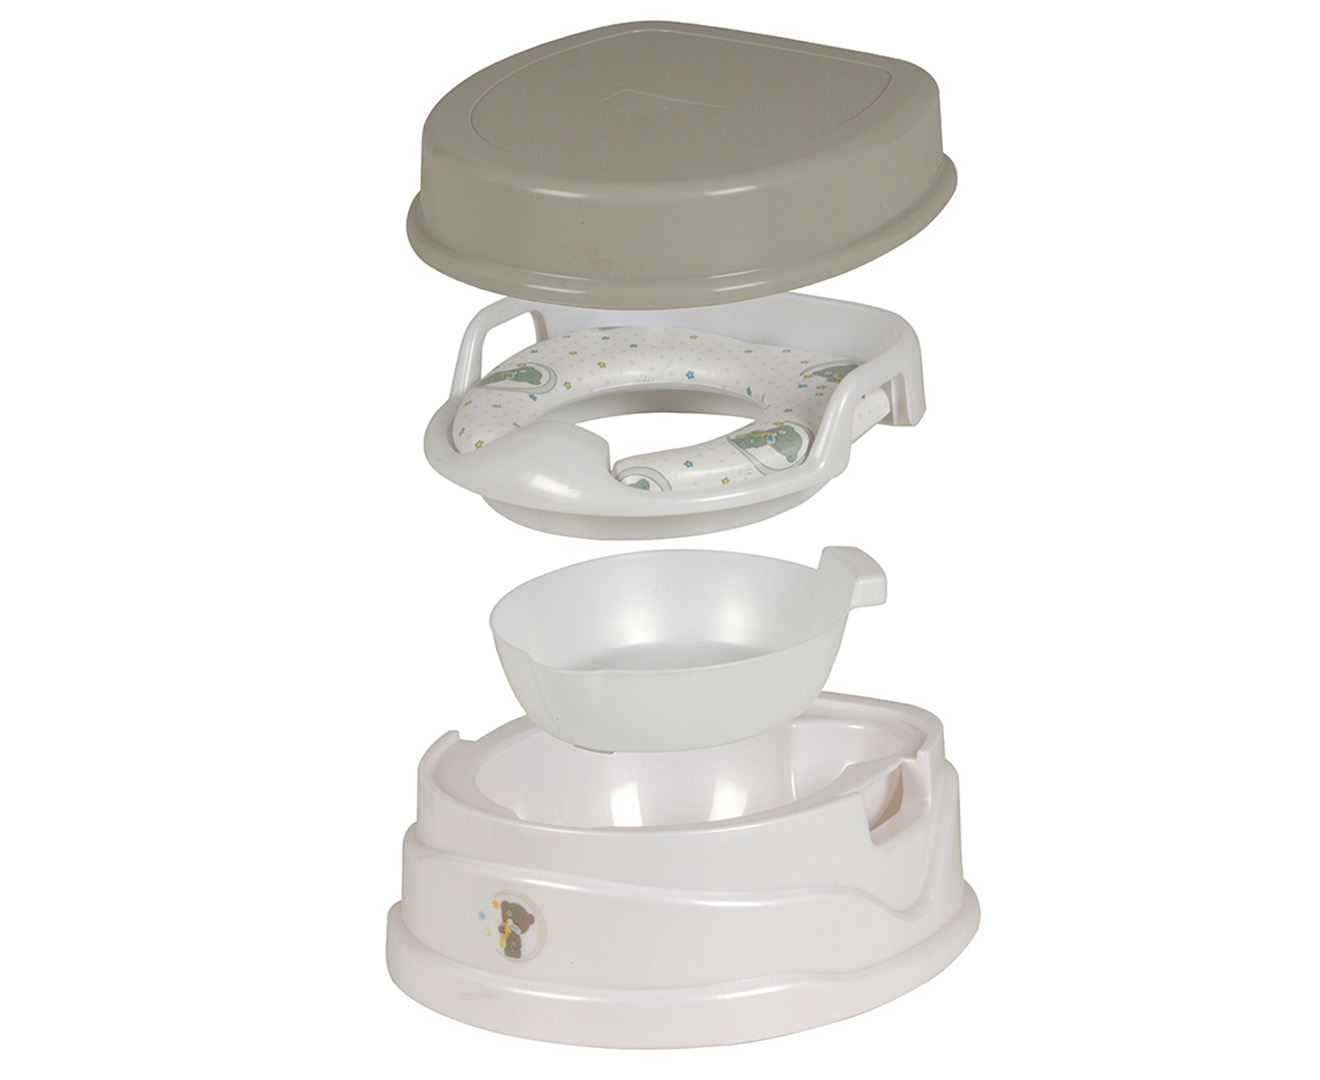 Childcare 4 In 1 Toilet Trainer Set Great Daily Deals At